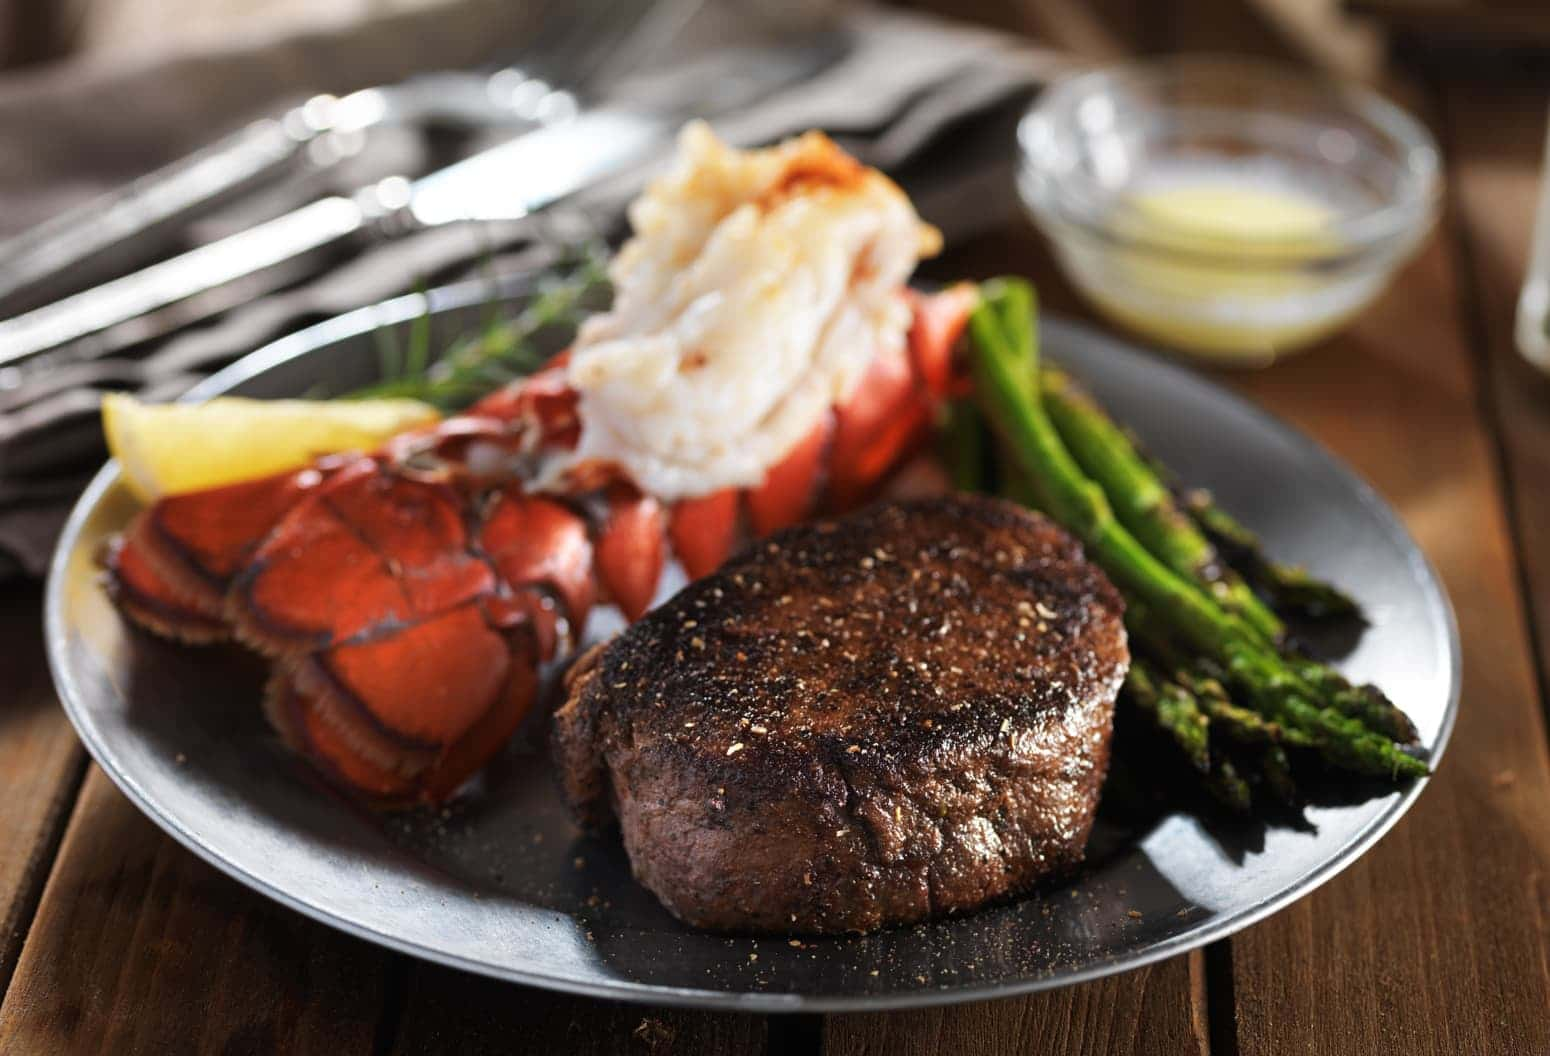 Steak and lobster served with butter and asparagus